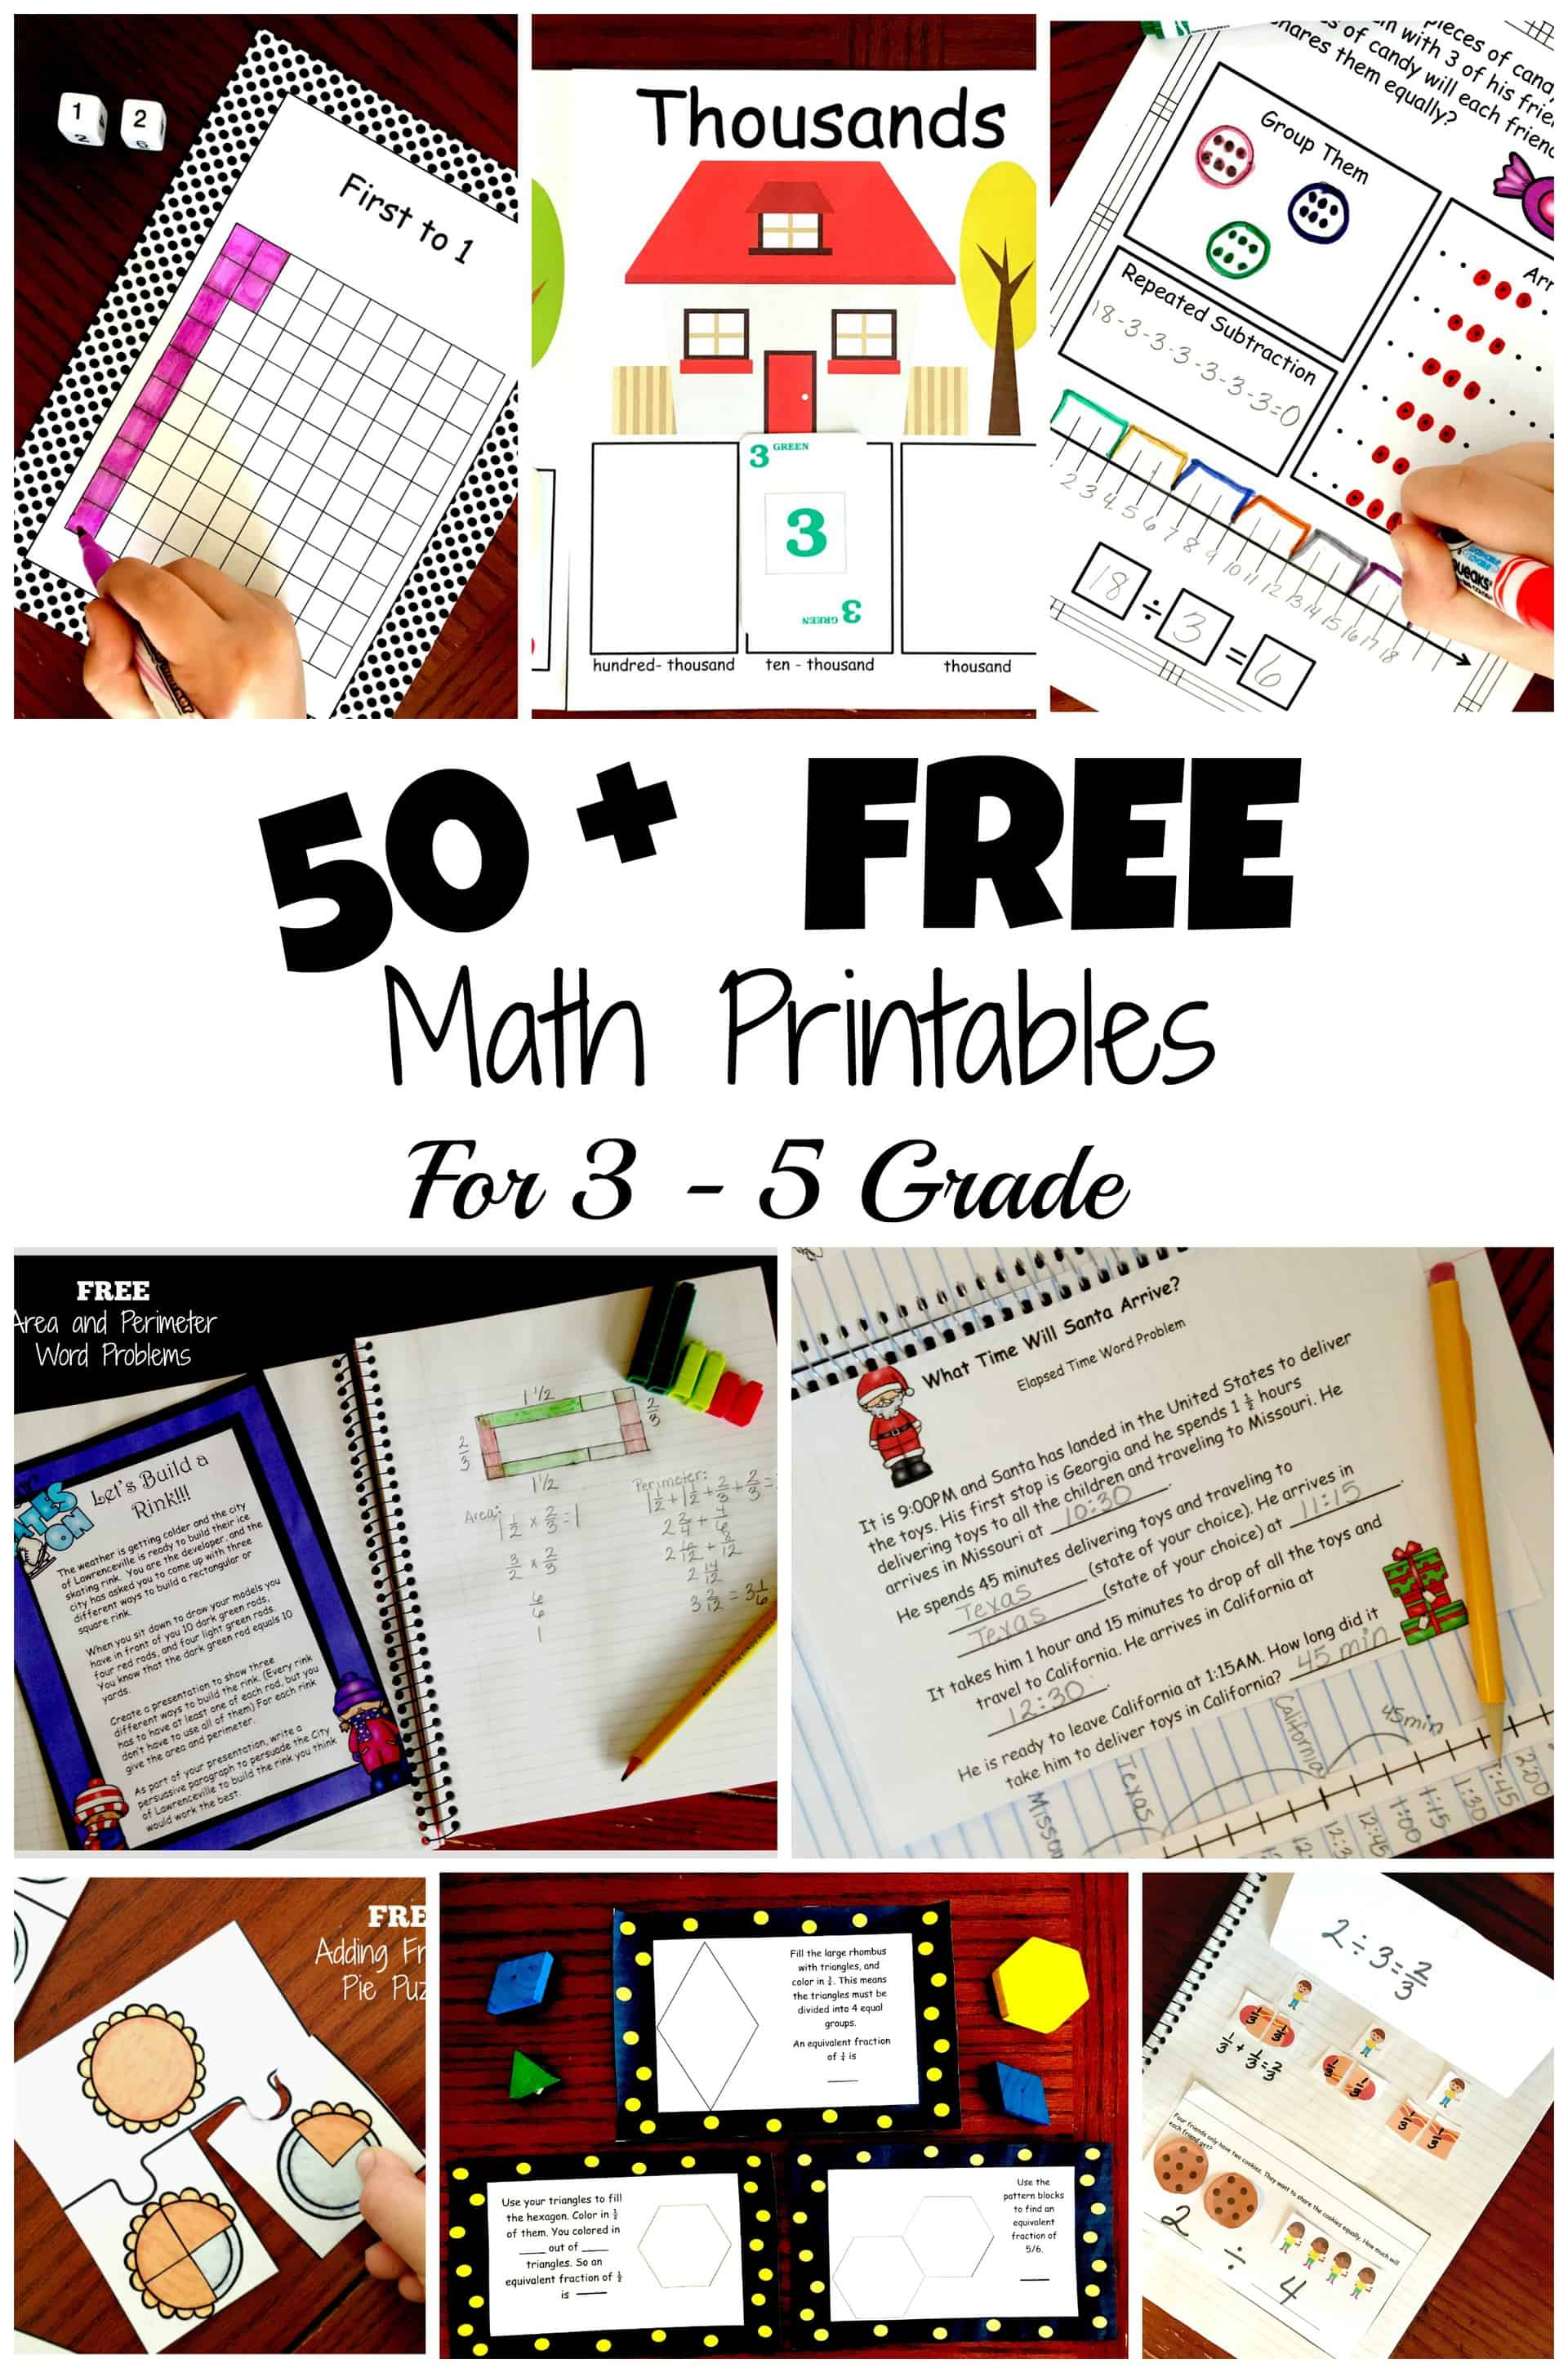 50 Awesome And Fun Math Activities For 3rd 4th And 5th